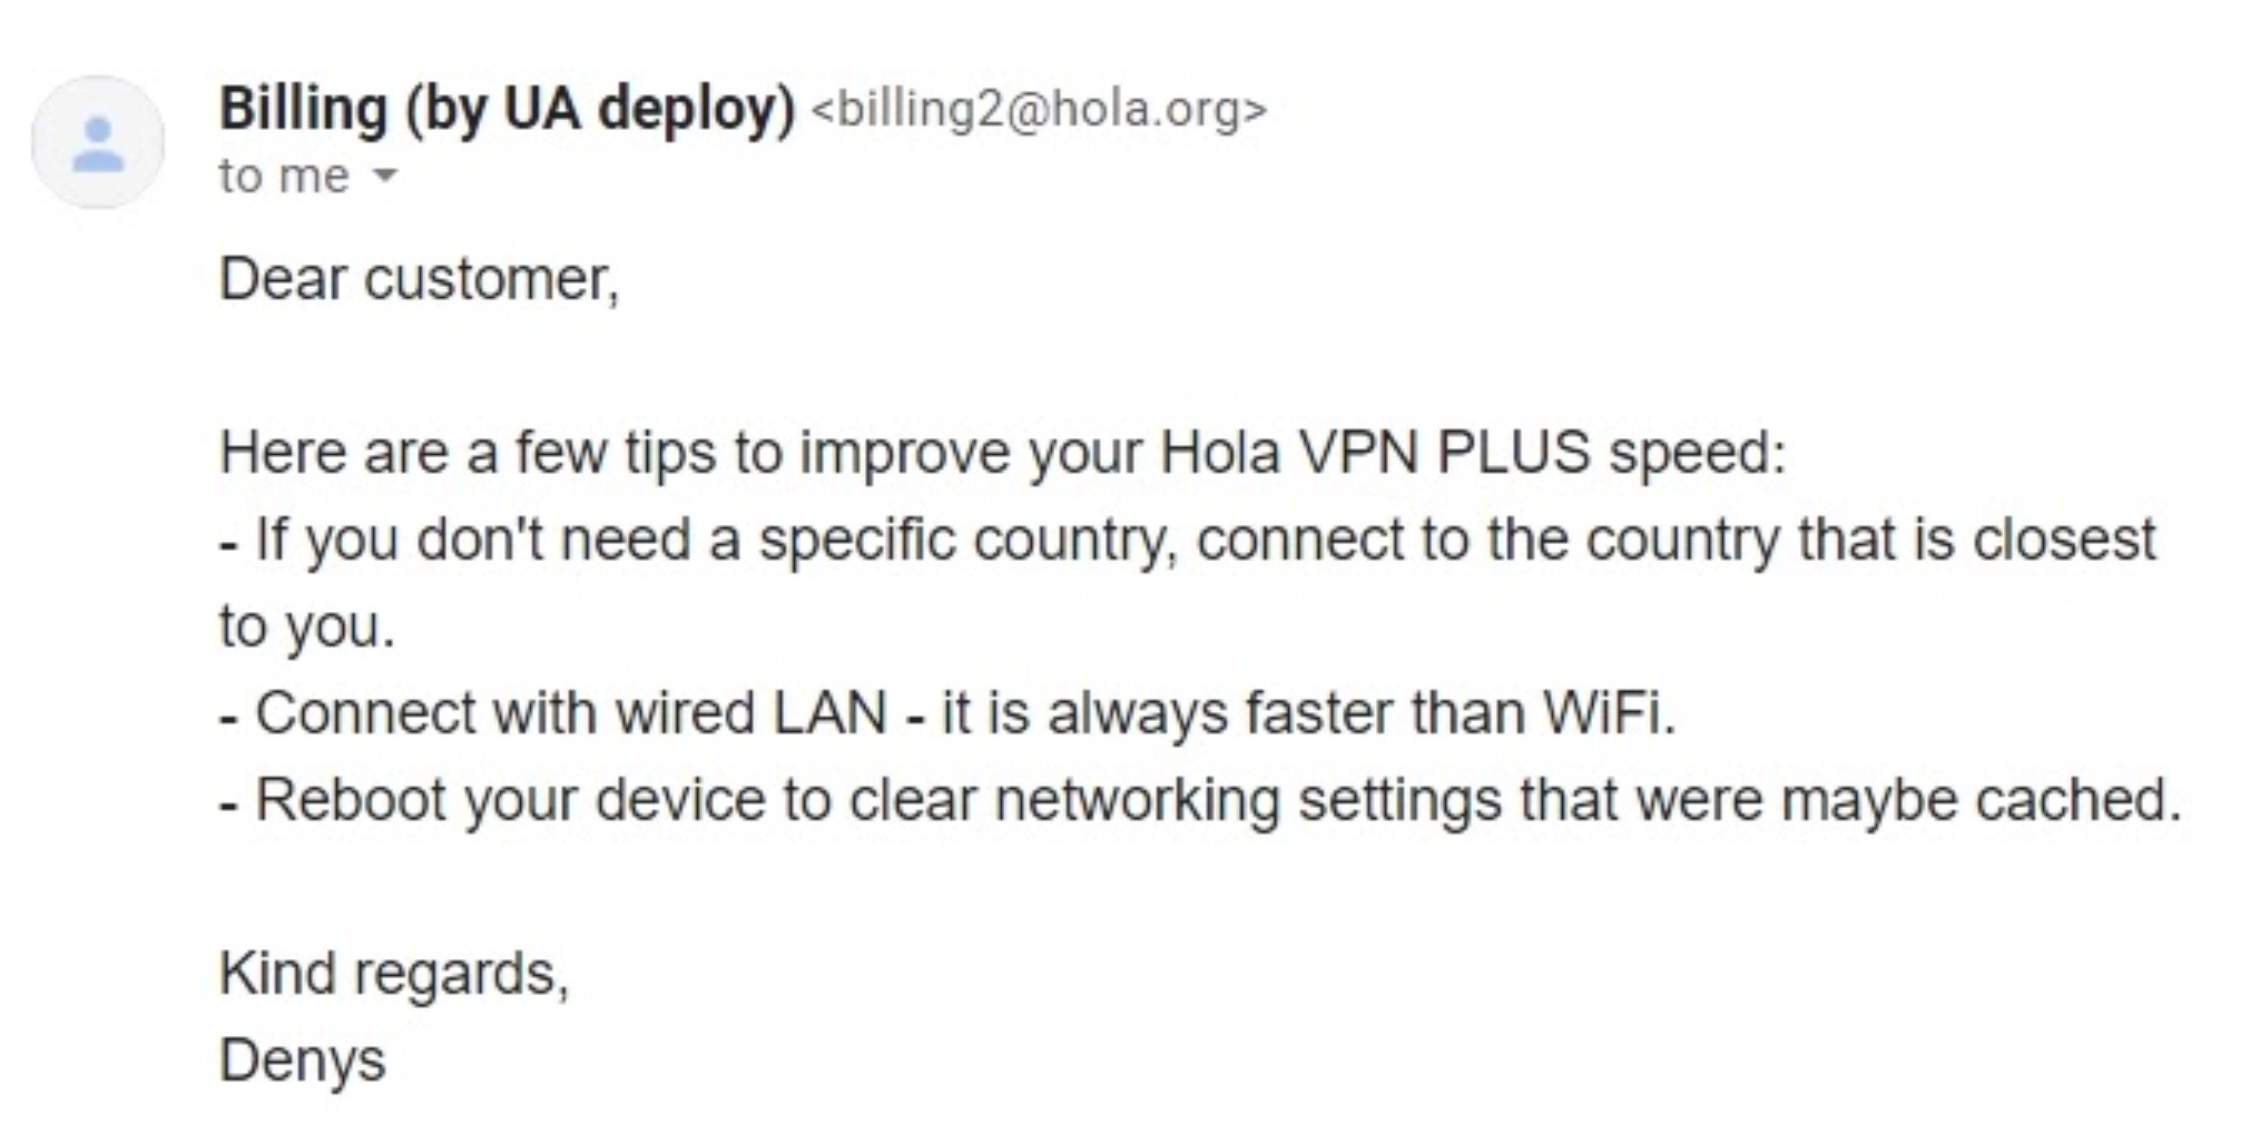 Screenshot of an email from Hola VPN tech support explaining how to speed up the VPN.